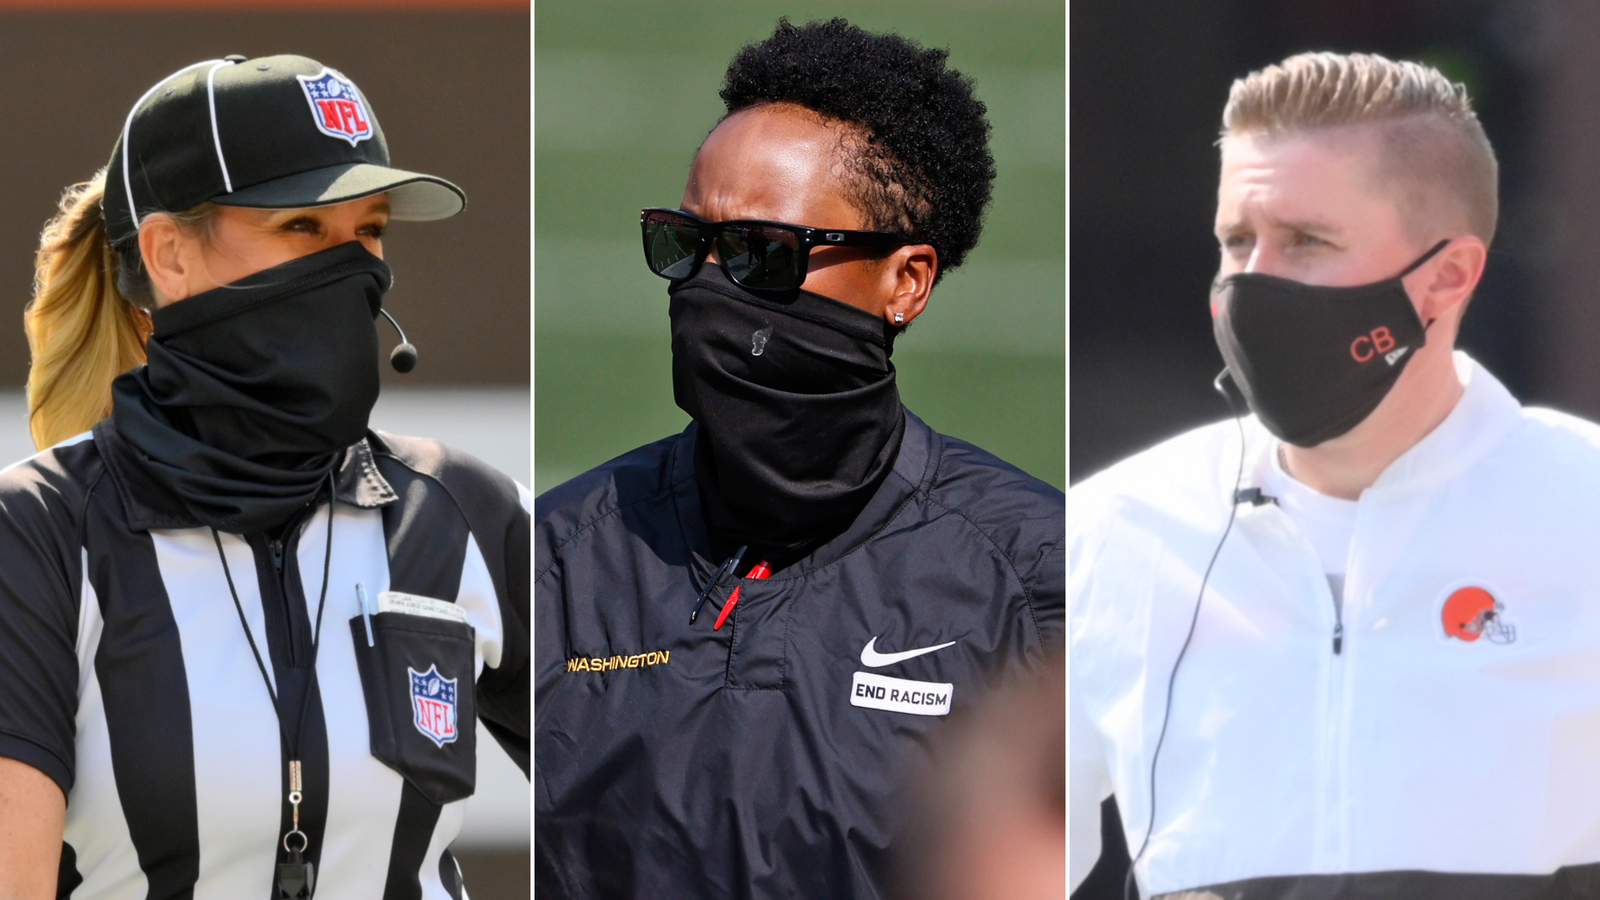 Two female coaches and a female official make NFL history by being on the field at the same time